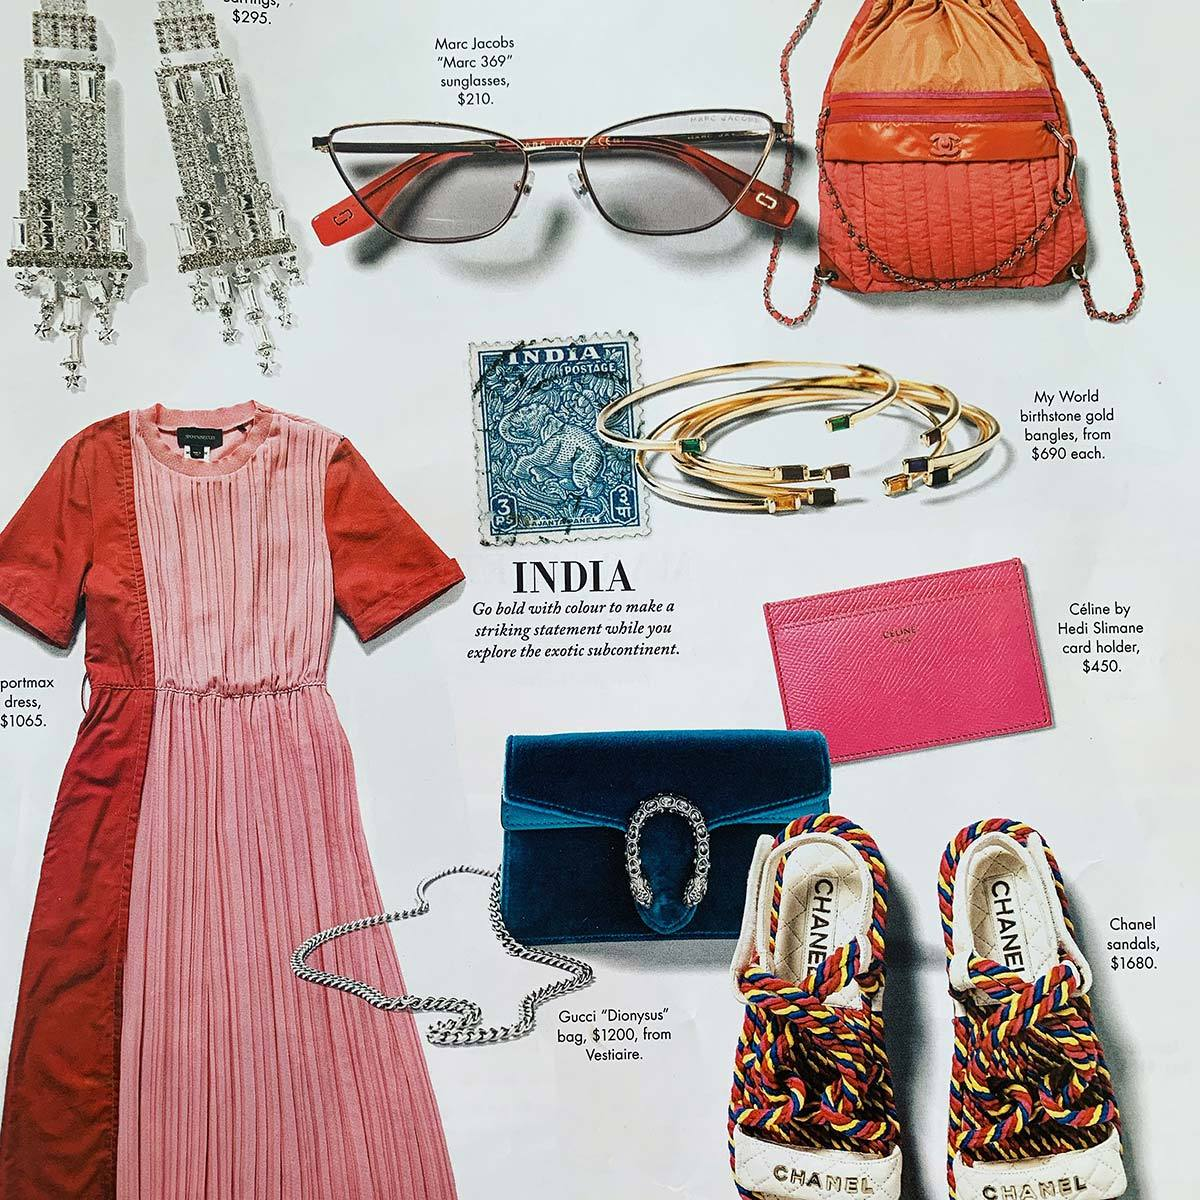 My World Jewellery in Sunday Life Magazine